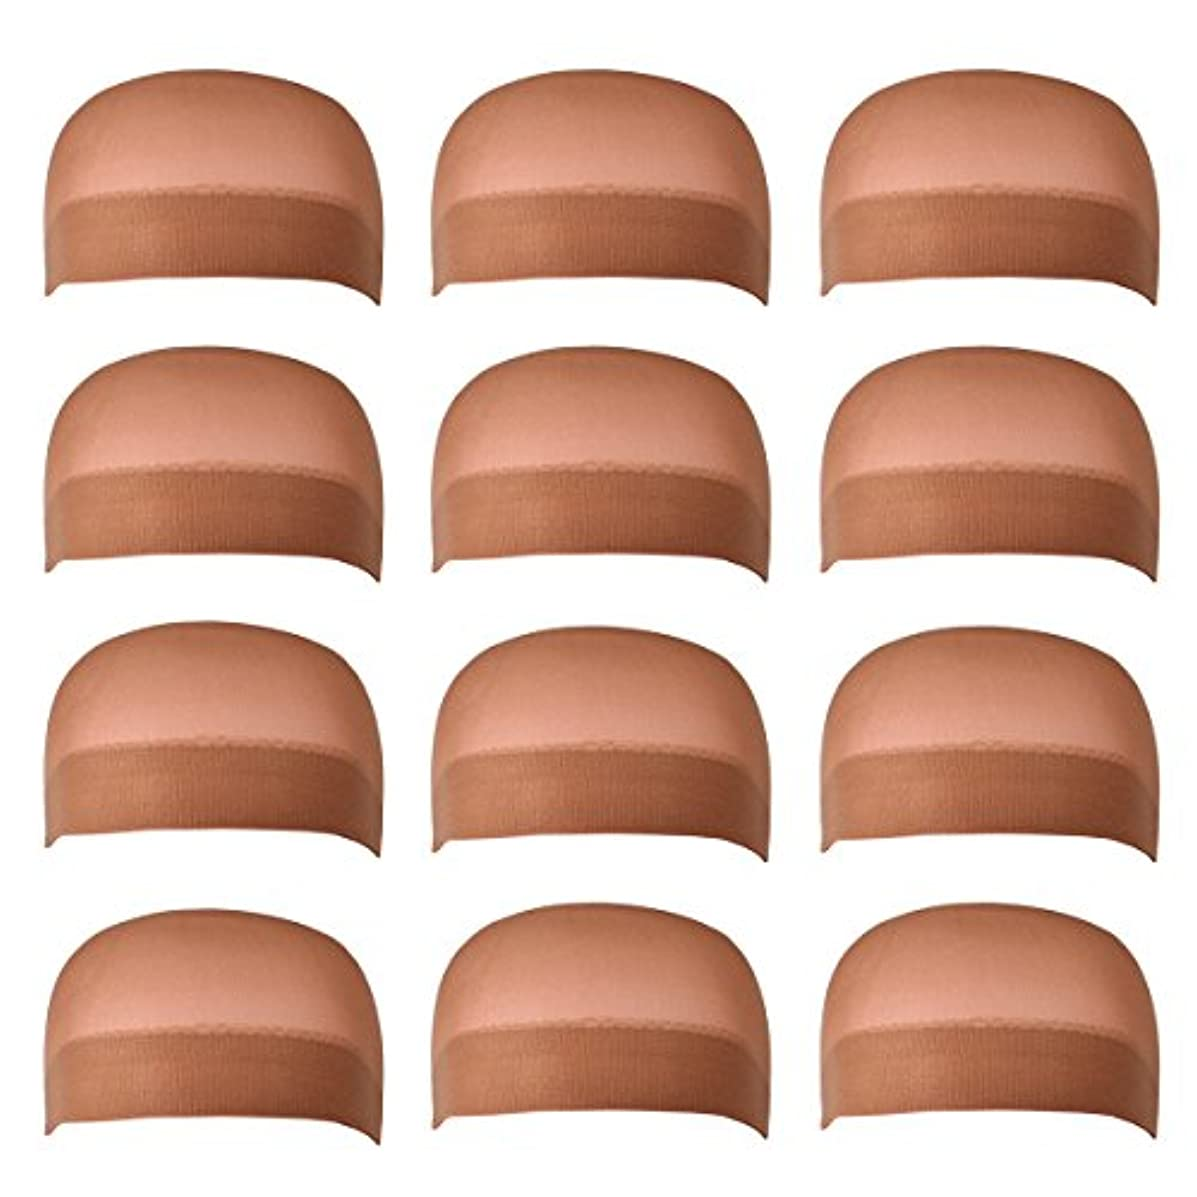 12 Pack Dreamlover Brown Stocking Wig Caps, Skin Tone Color Stretchy Nylon Close End Wig Caps, Each Paper Board Contains 2 Wig Caps (Brown)